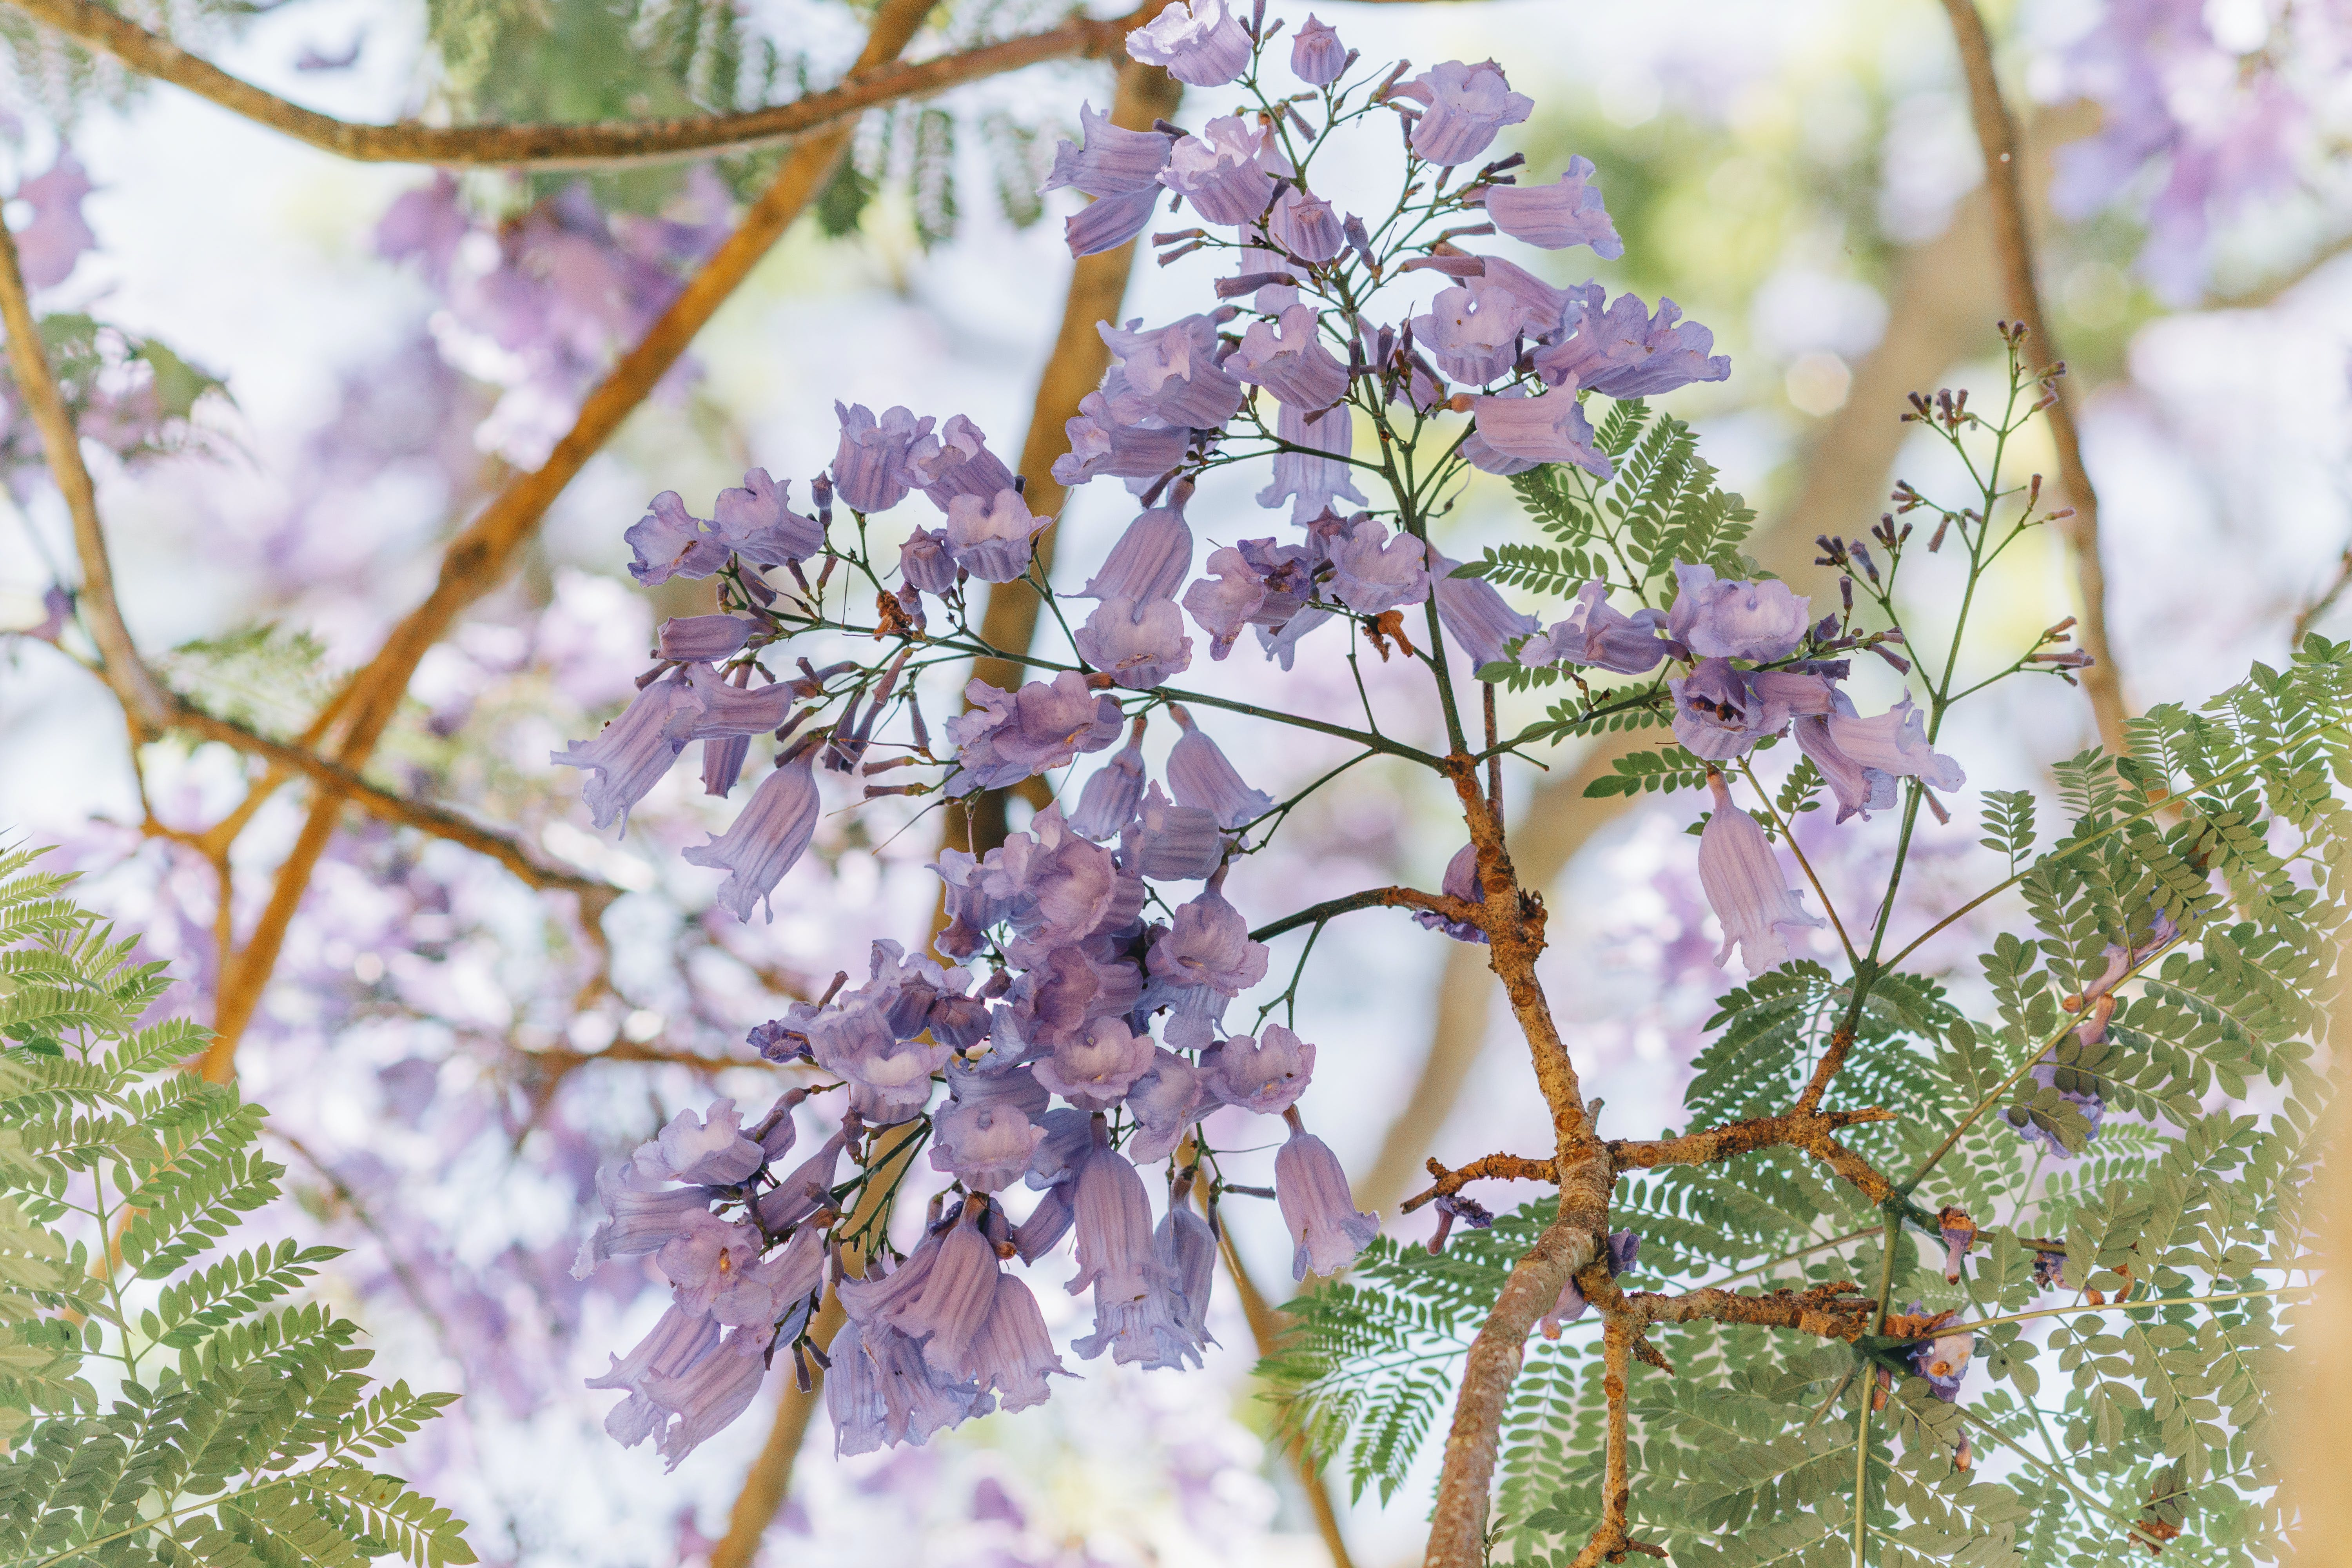 Selective Focus Photography of Purple Clustered Flowers